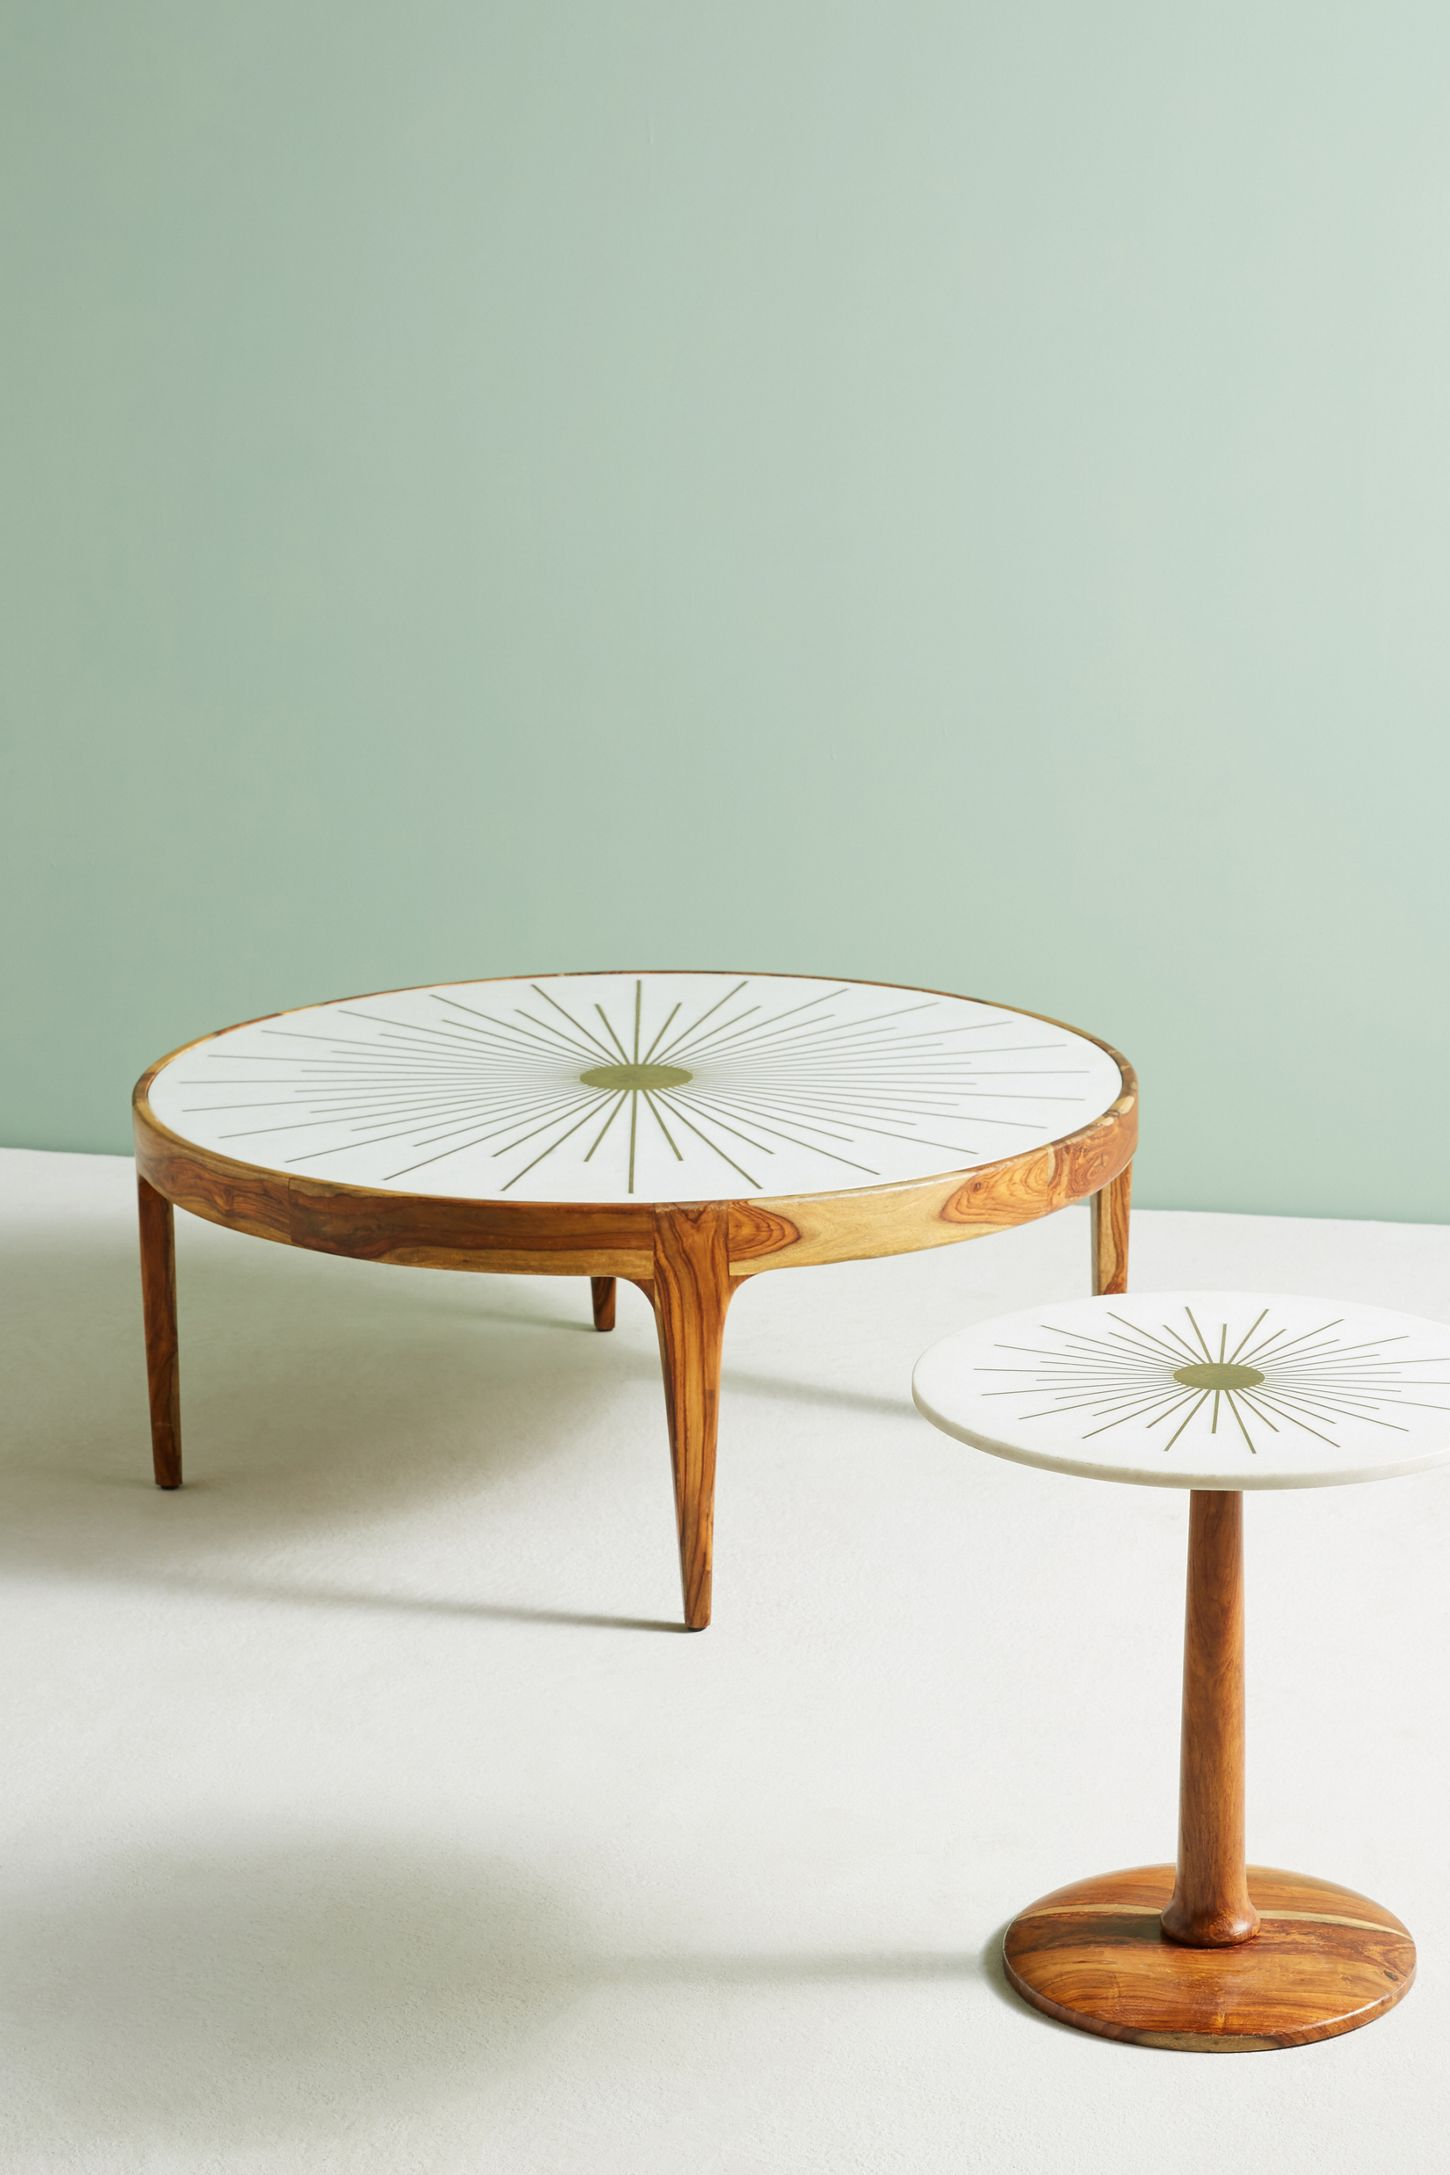 Brass Starburst Round Coffee Table Anthropologie - Looking for a round coffee table